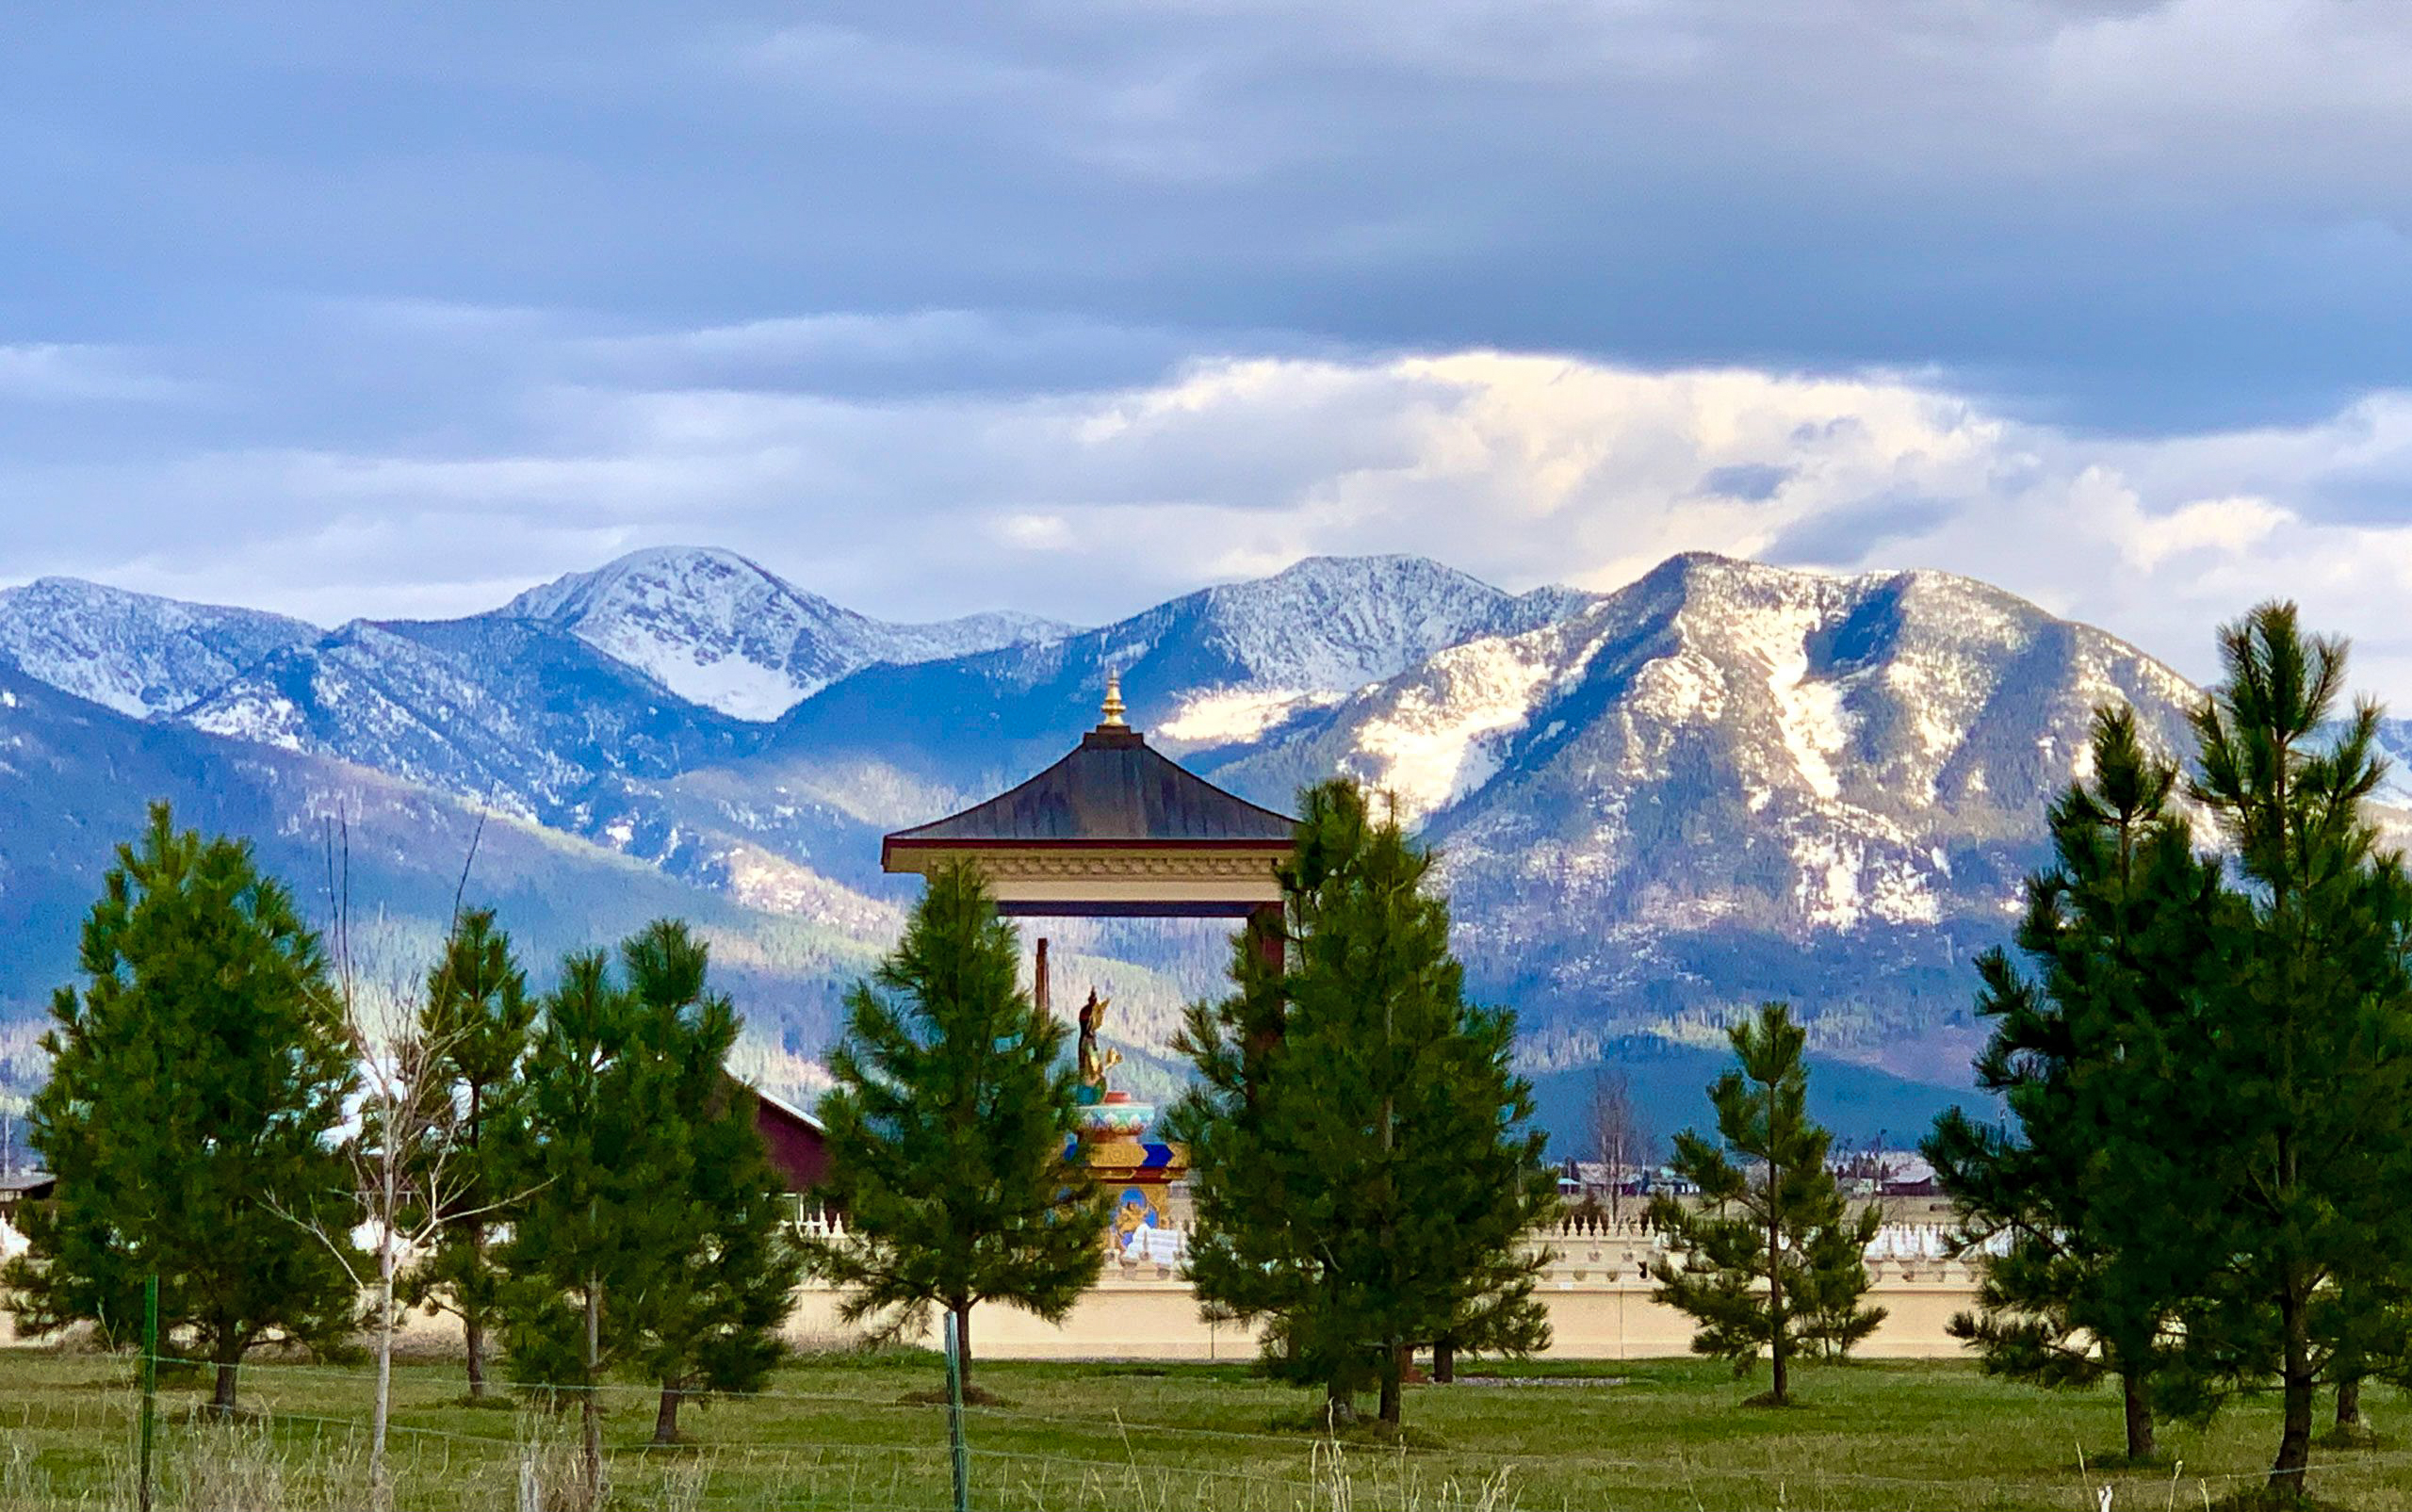 Unusual Things to Do in Montana - Visit the Garden of One Thousand Buddhas